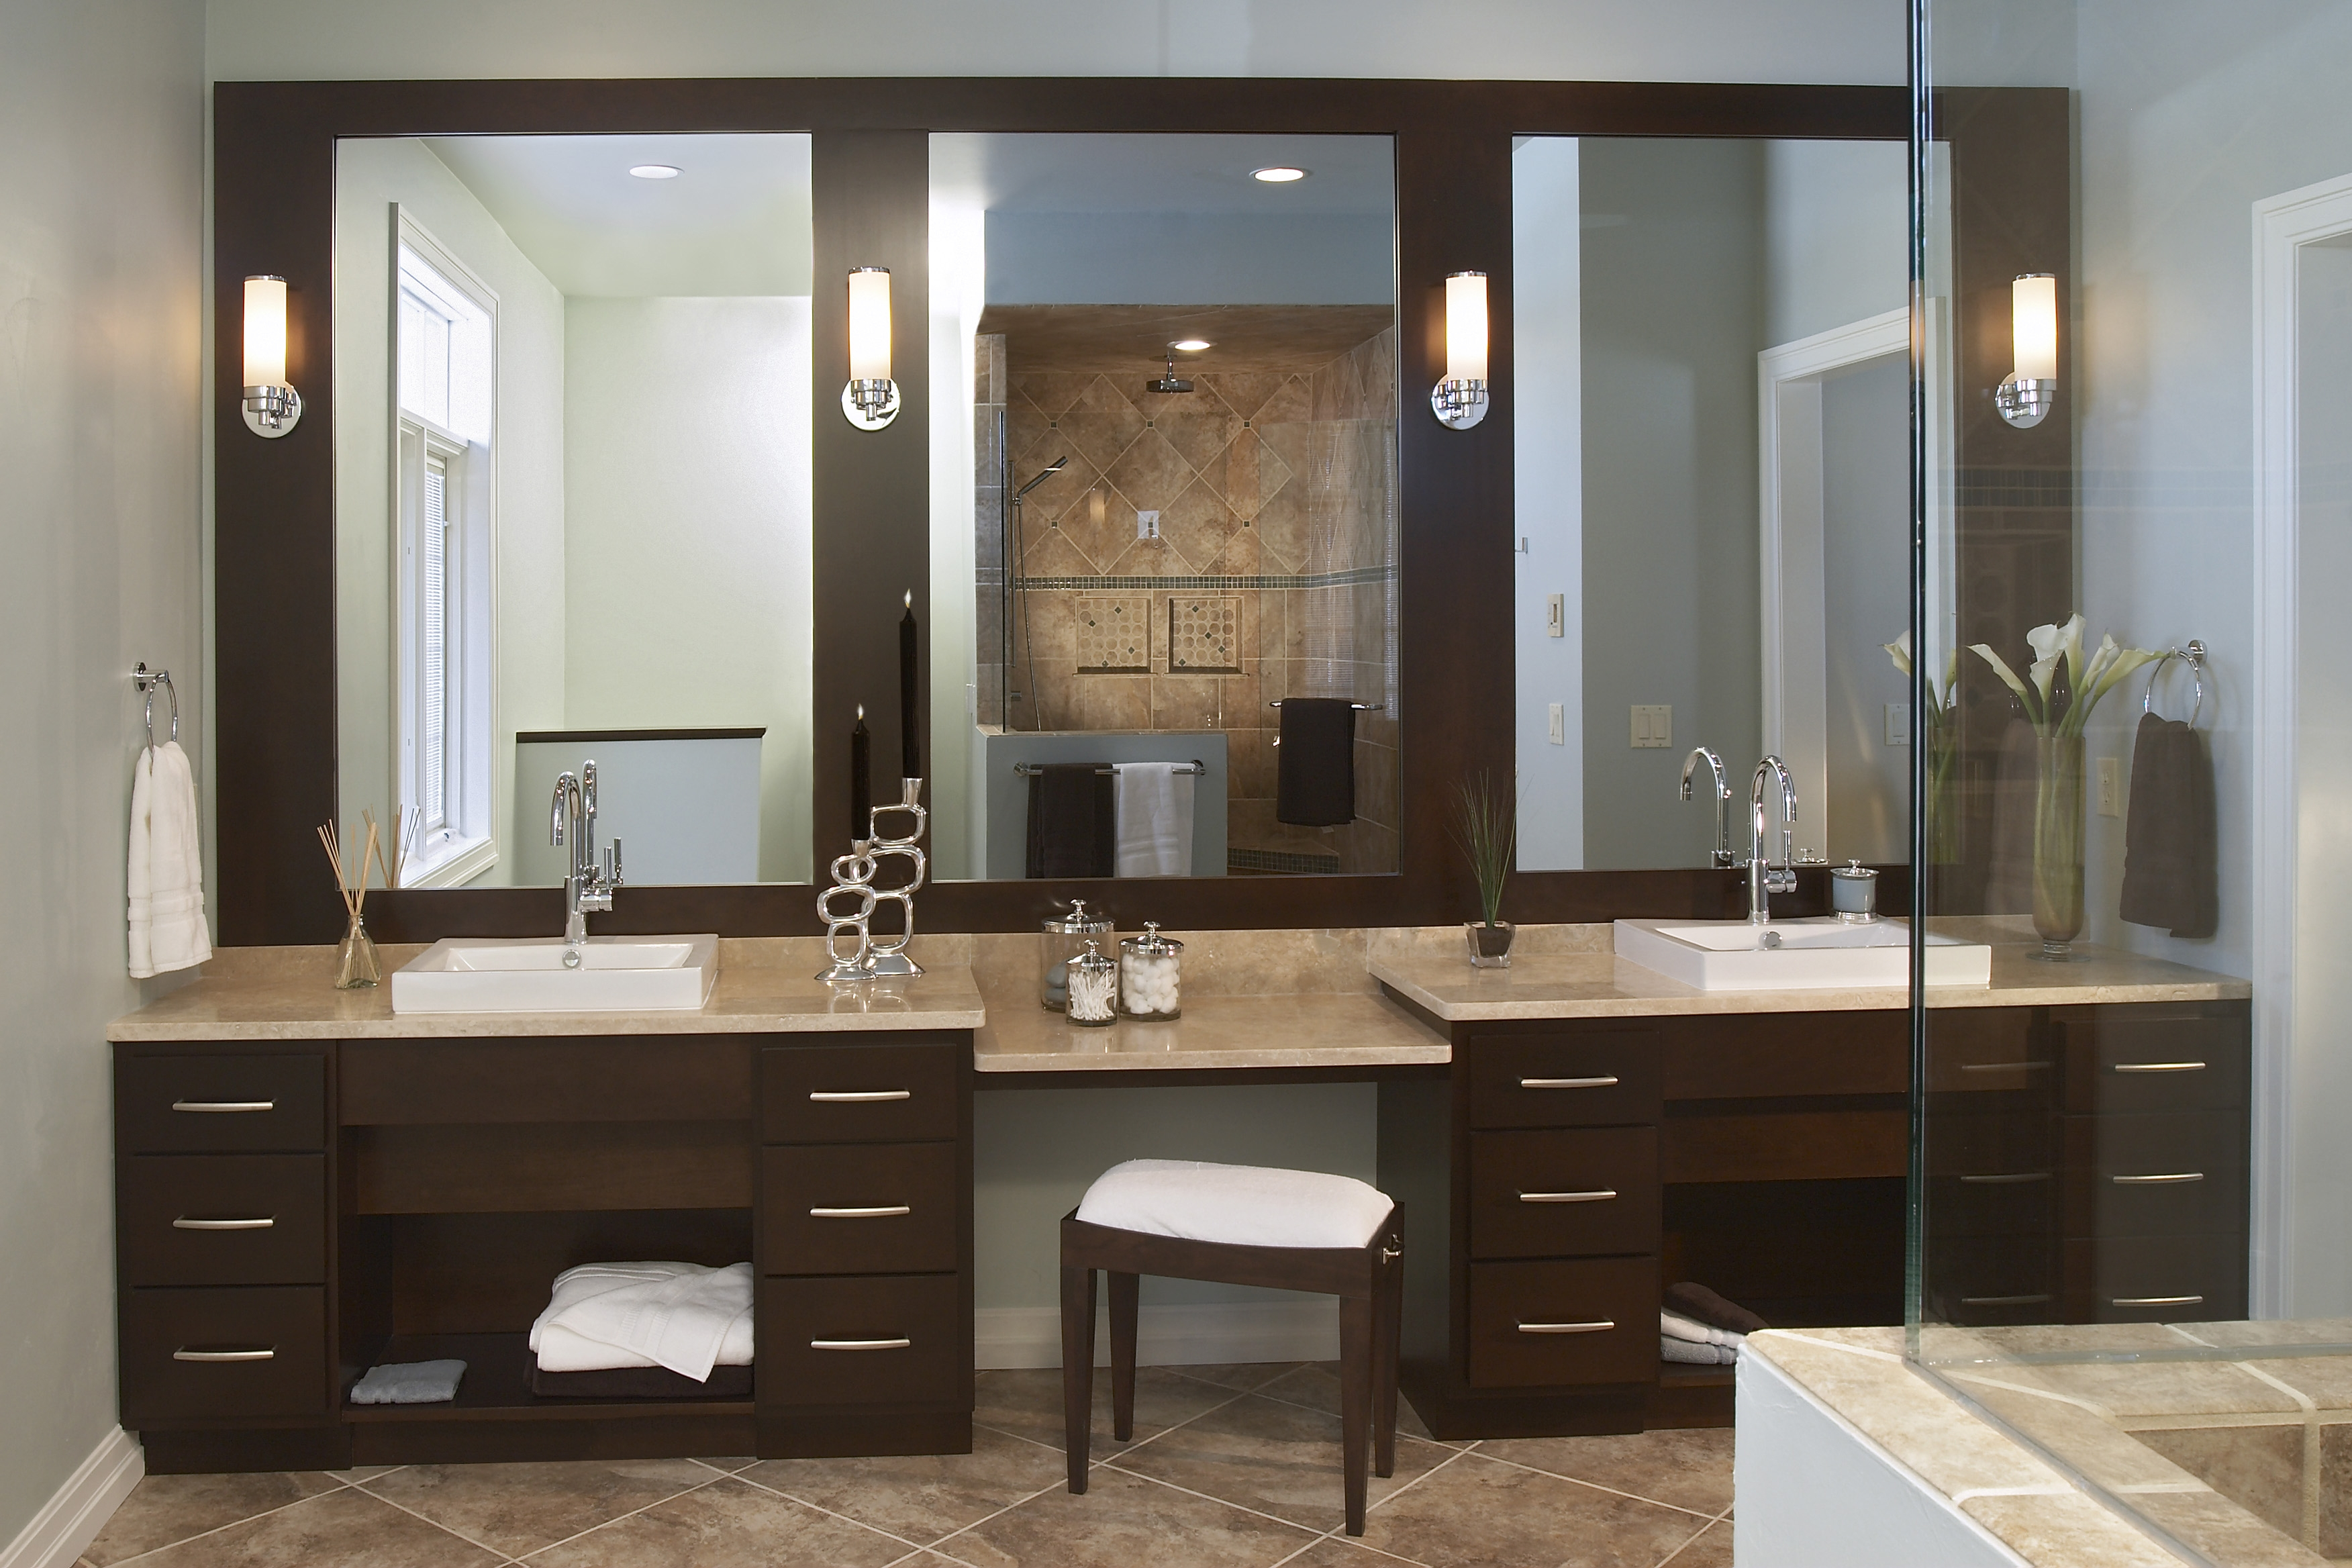 Standard Height For Light Over Bathroom Vanity